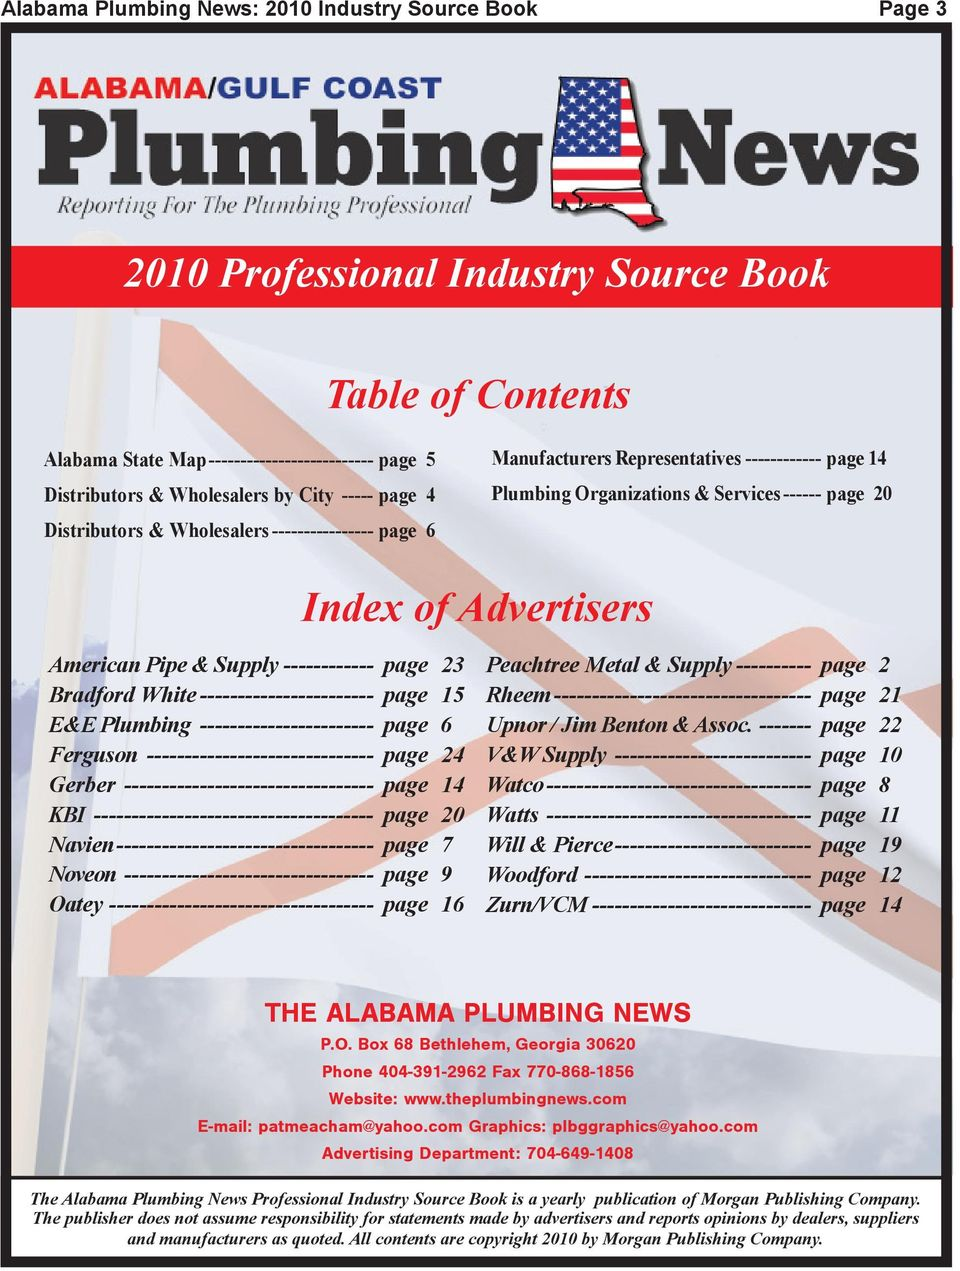 Alabama Plumbing News: 2010 Industry Source Book - PDF